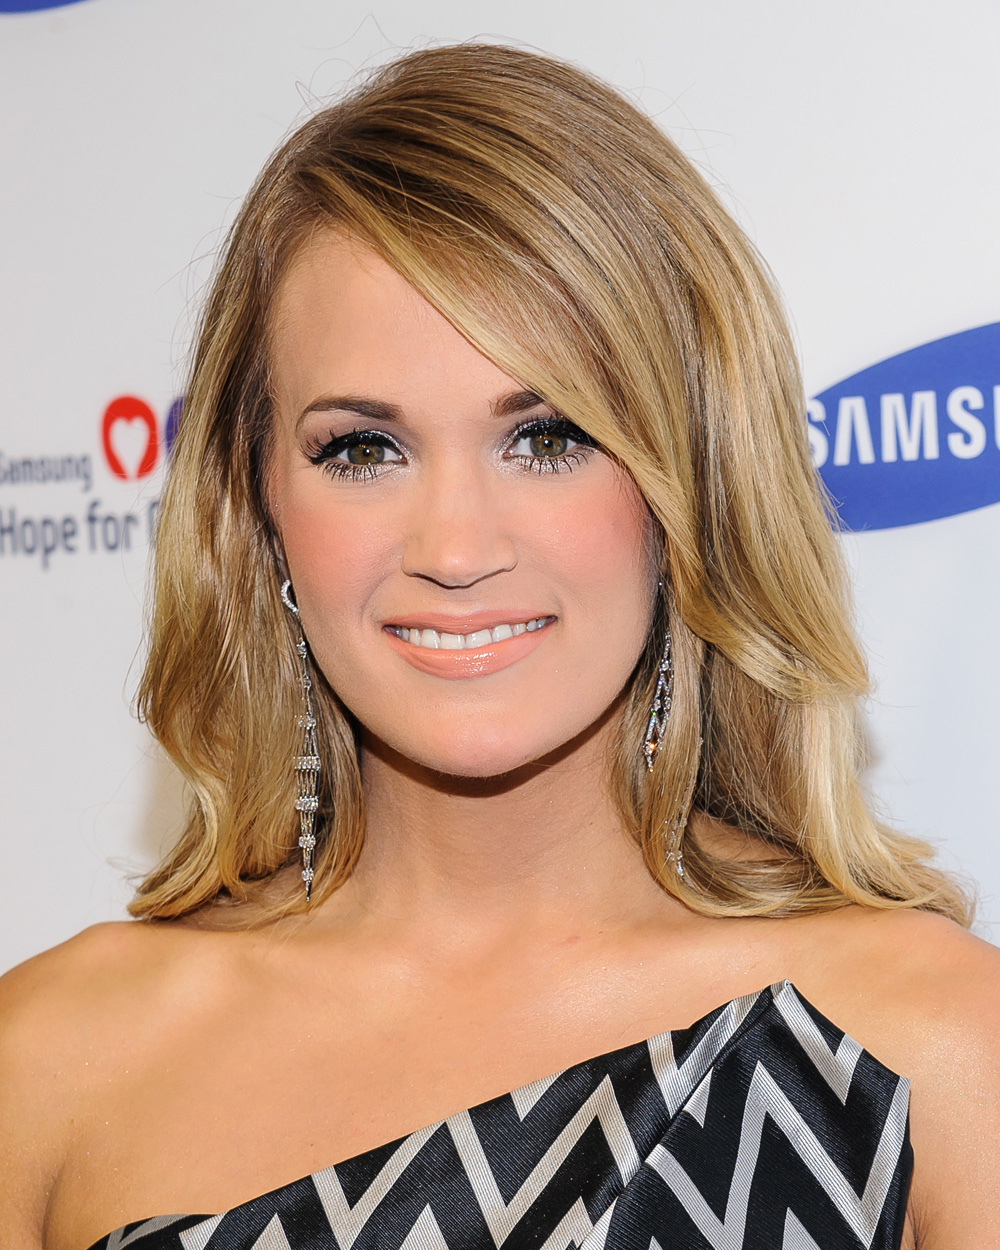 Best lashes: Carrie Underwood